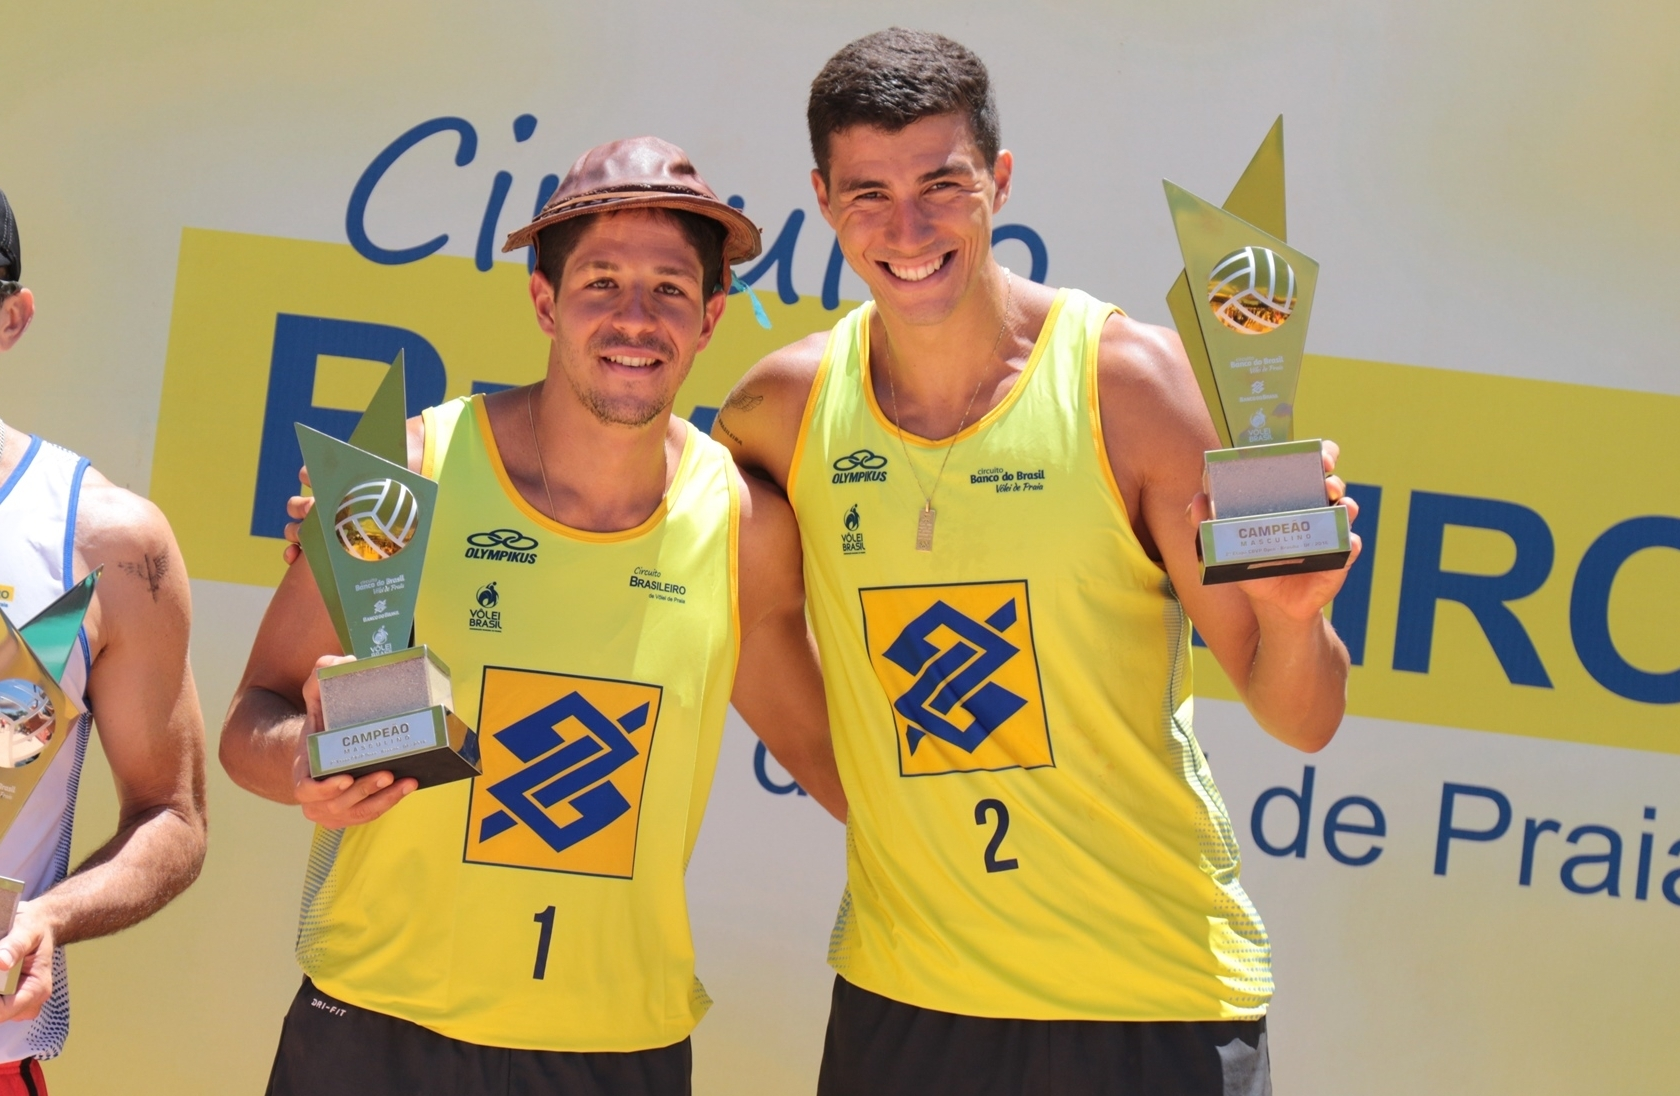 Alvaro and Saymon celebrate their victory in Brasilia. Photocredit: CVB.